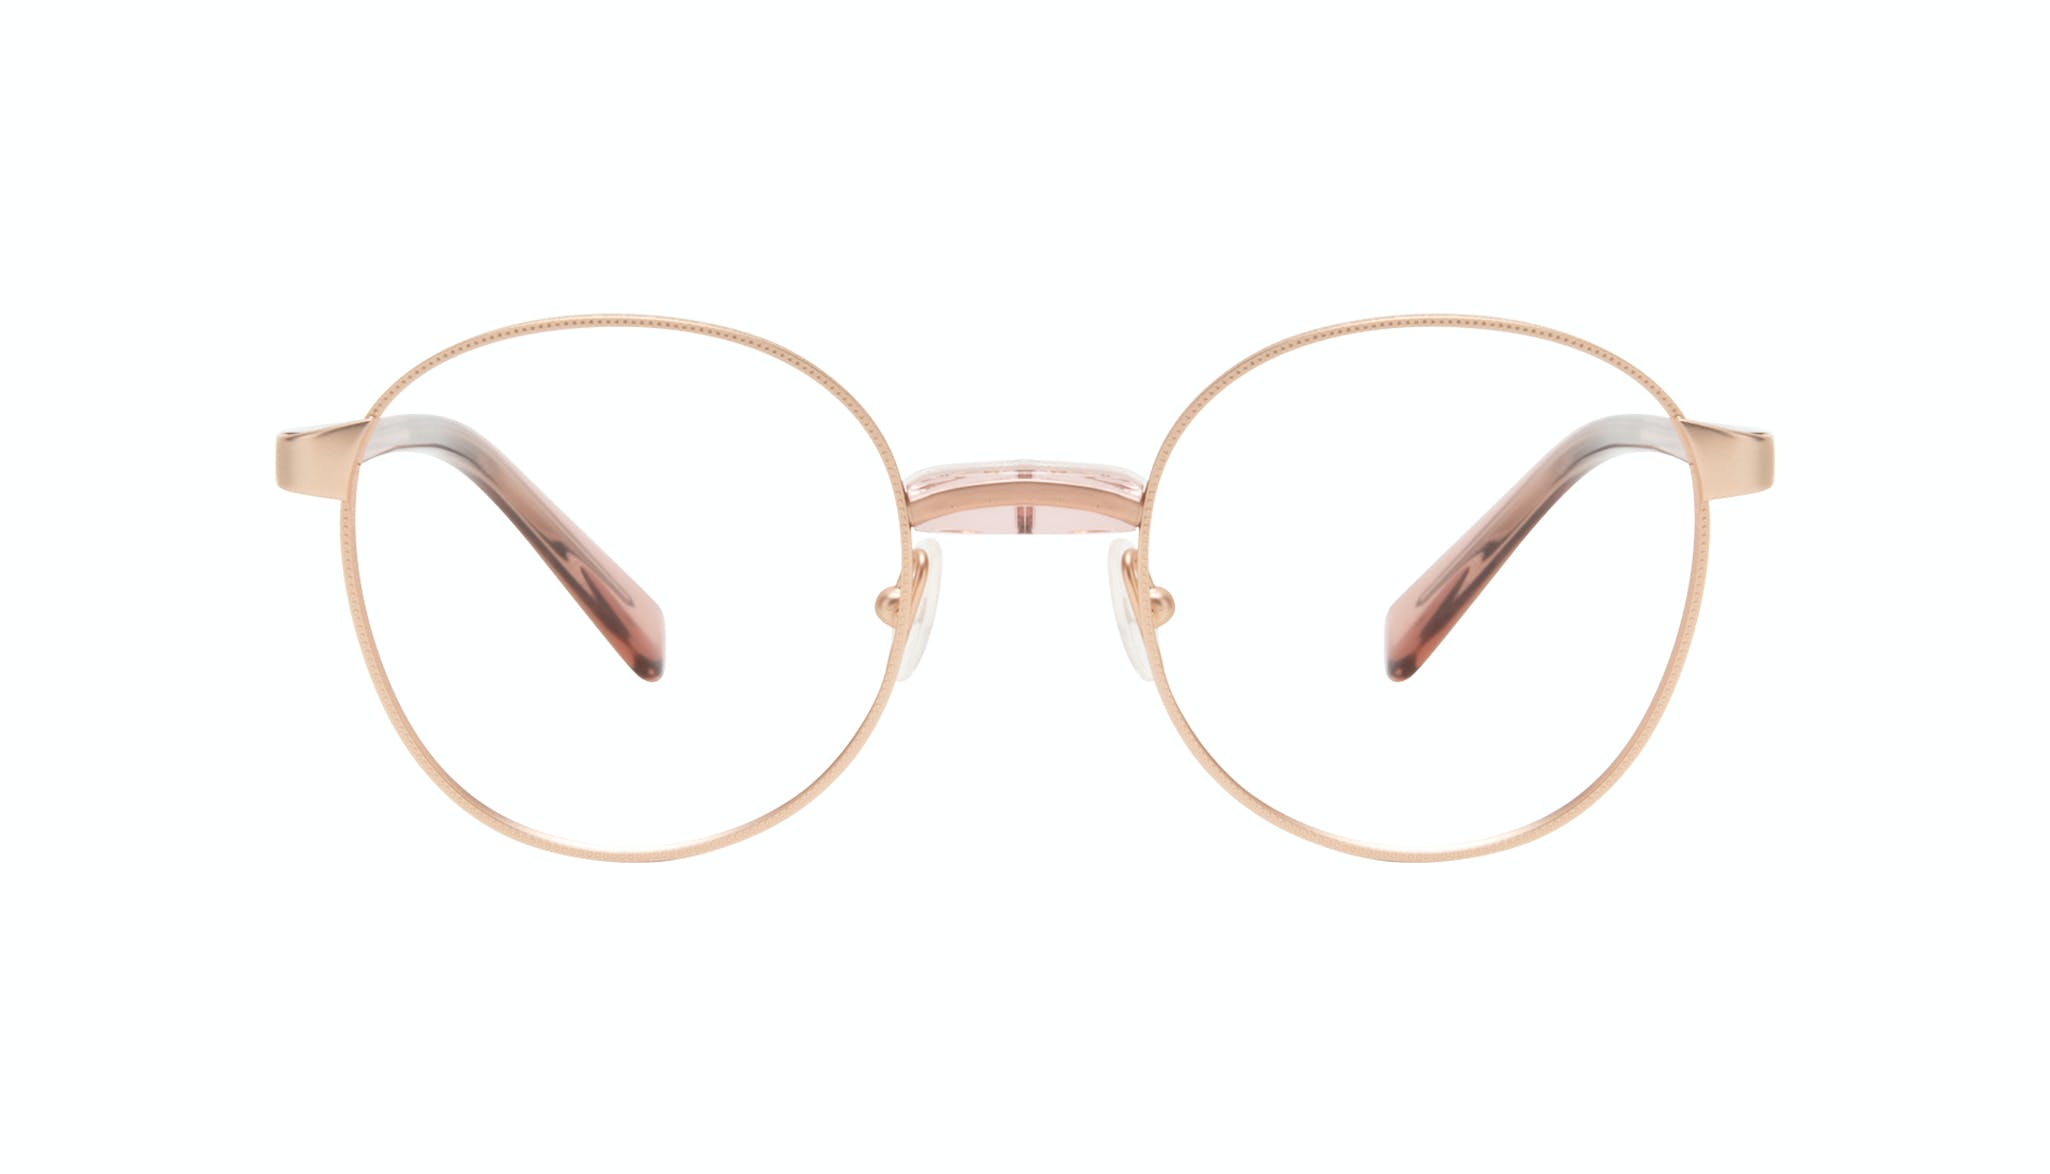 Affordable Fashion Glasses Round Eyeglasses Women Curious Rose